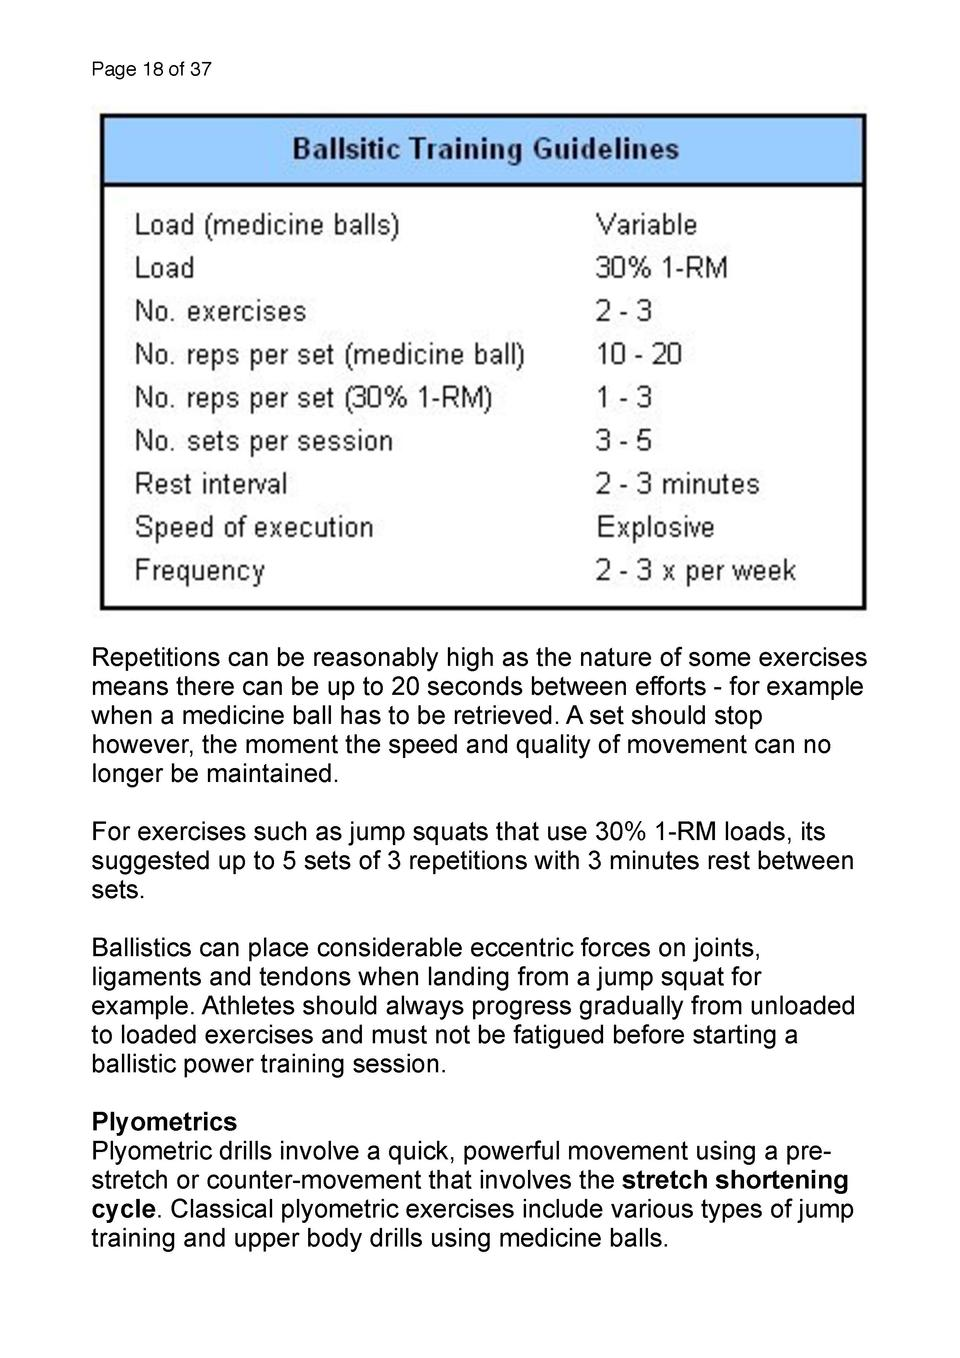 Page 18 of 37  Repetitions can be reasonably high as the nature of some exercises means there can be up to 20 seconds betw...